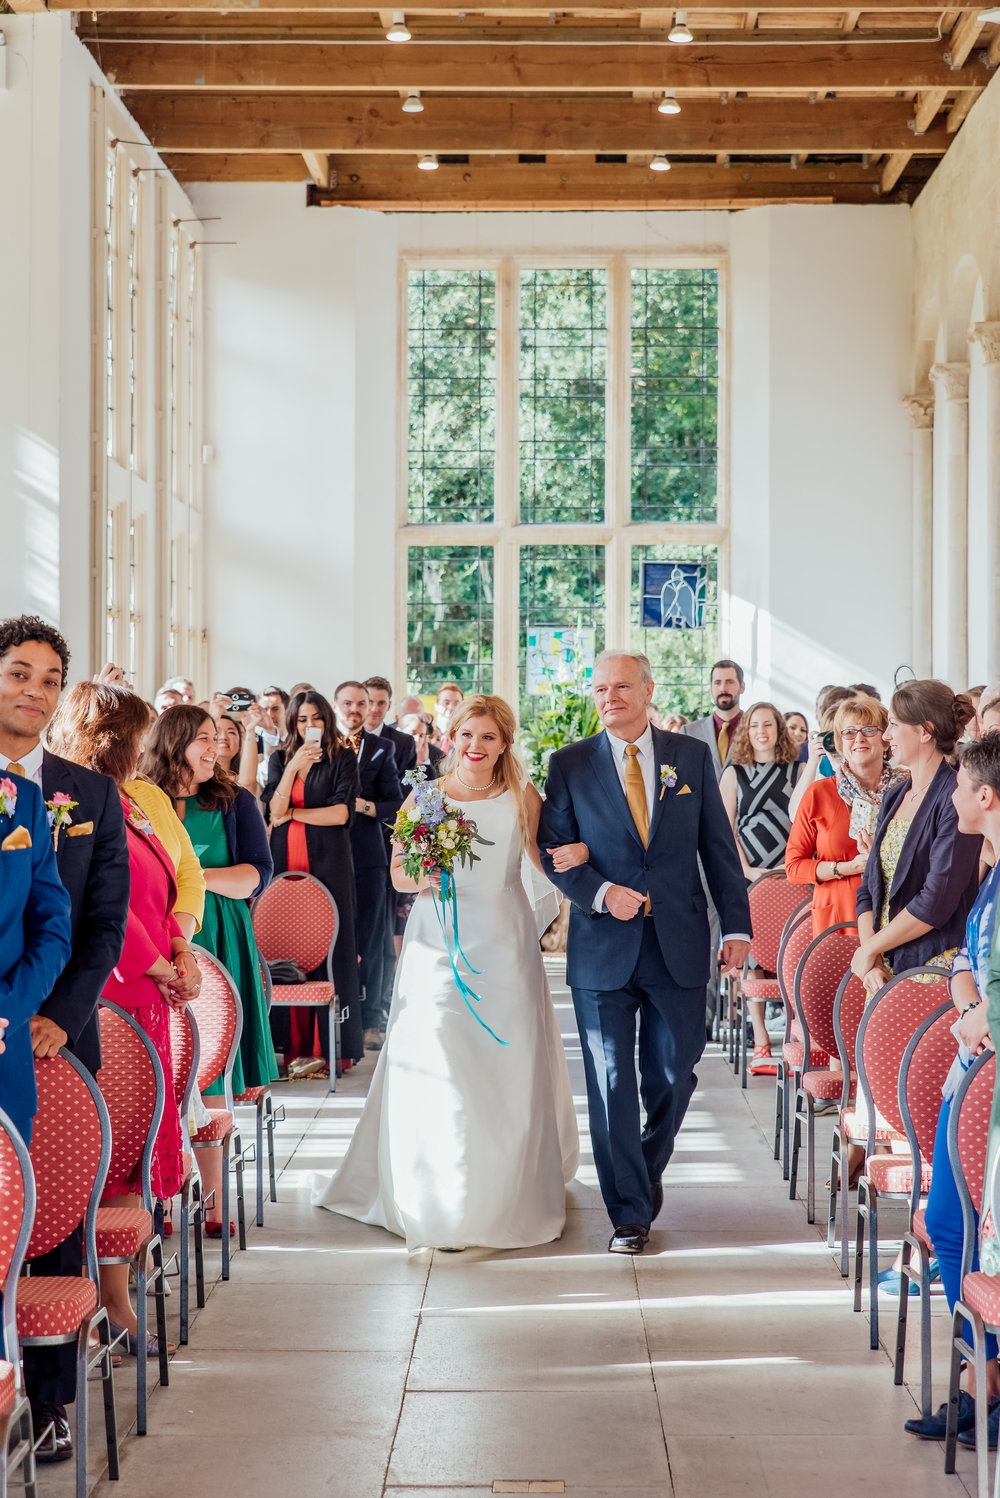 Bride and her Dad walking down the aisle at Highcliffe Castle Dorset - Amy James Photography - Documentary wedding photographer for Hampshire Dorset and Surrey